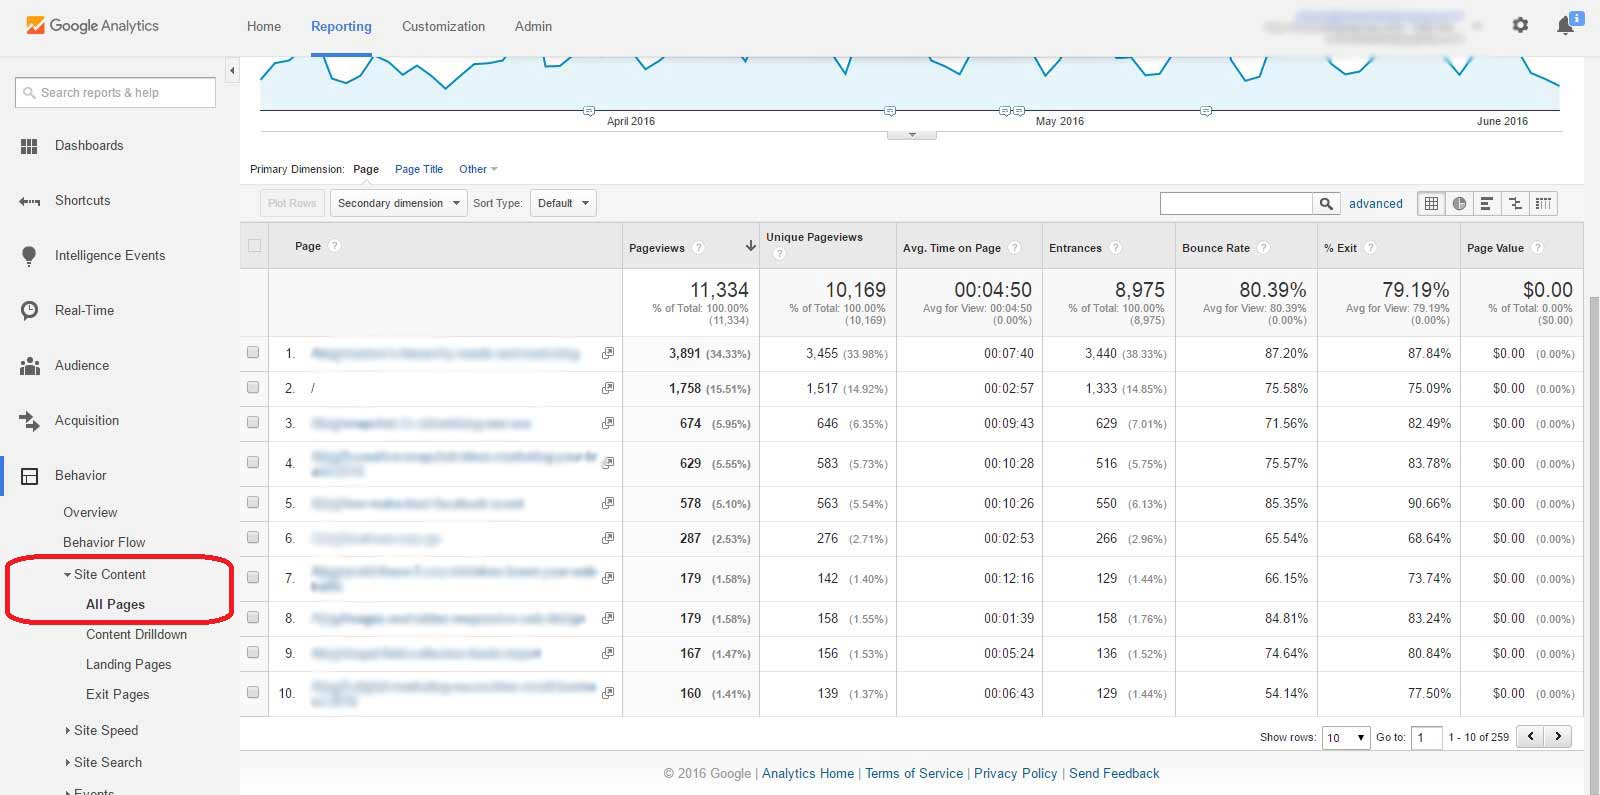 Google Analytics Report, Behavior, Site Content, All Pages, Screenshot